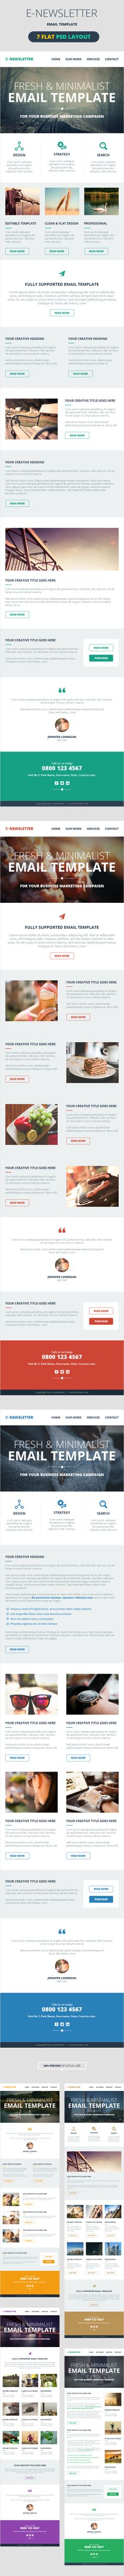 A set of 7 psds for Flat designed Email Templates which can be use for any kind of business like Travel, Corporate, E-commerce, Retail, Photographer, Artist, Designer & Freelancer. Design is clean and professional. Layers are well organized, you can easily customize its design & color as per your need.